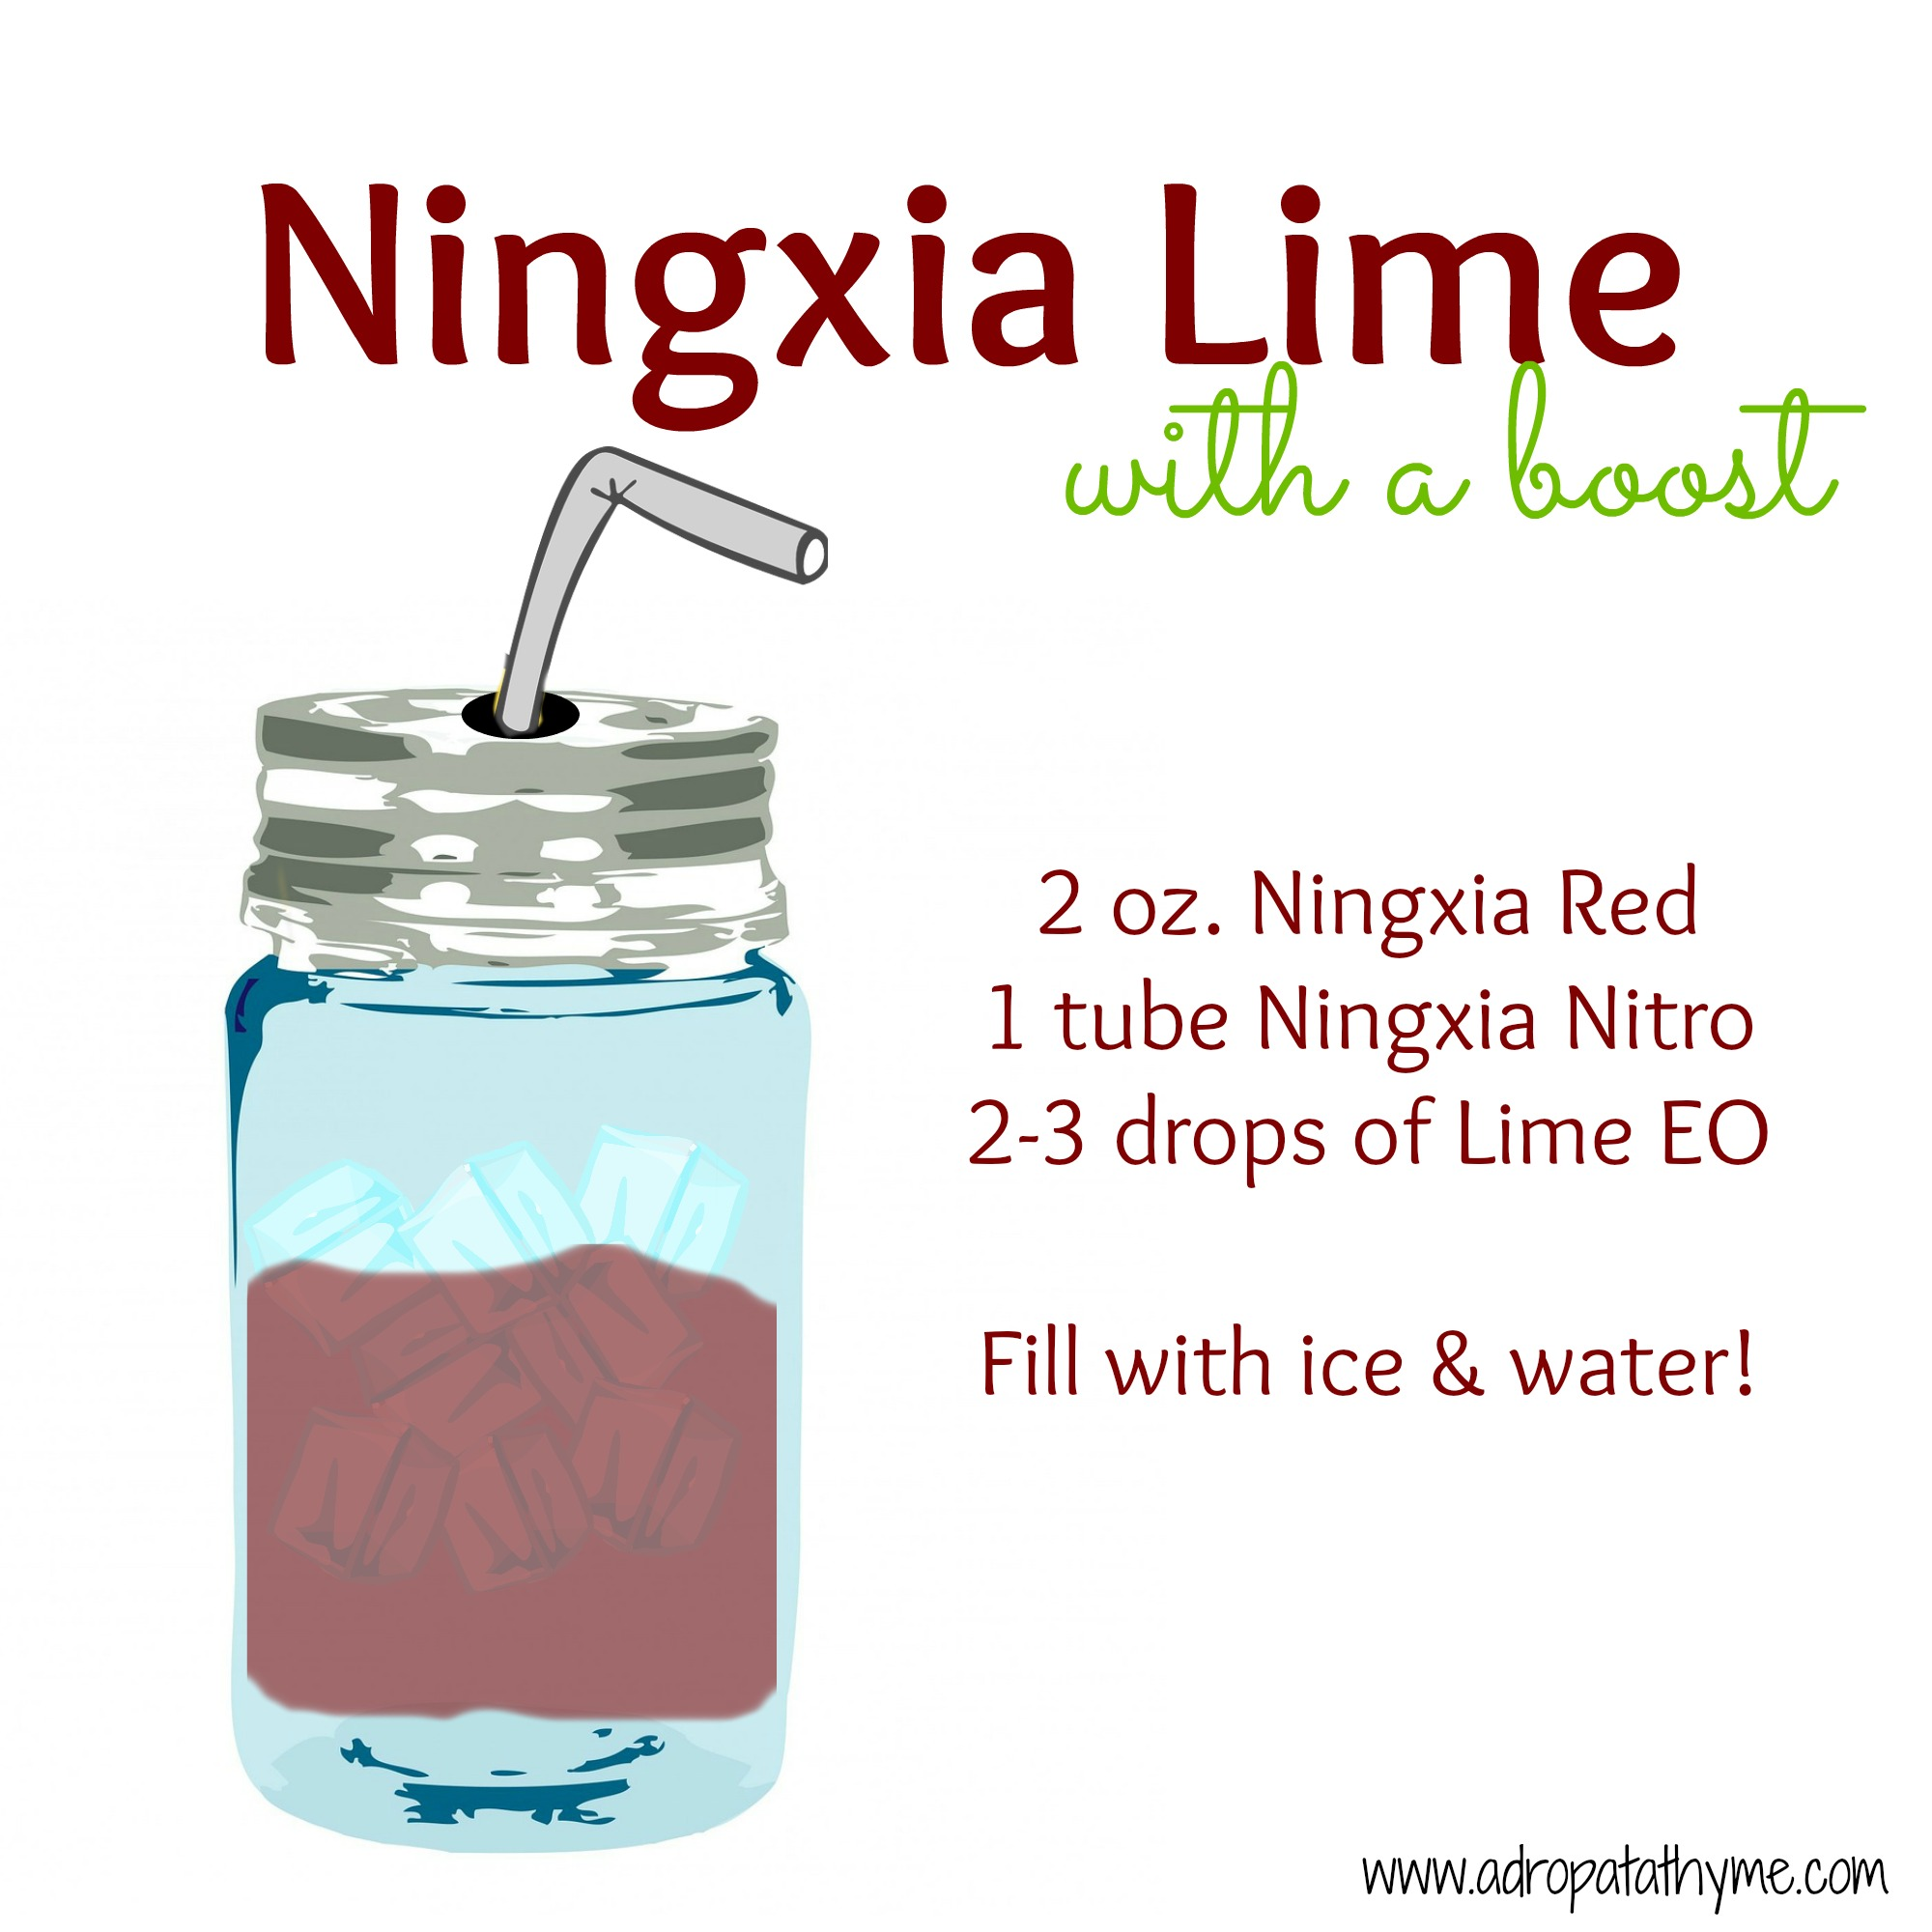 Ningxia Lime with a Boost